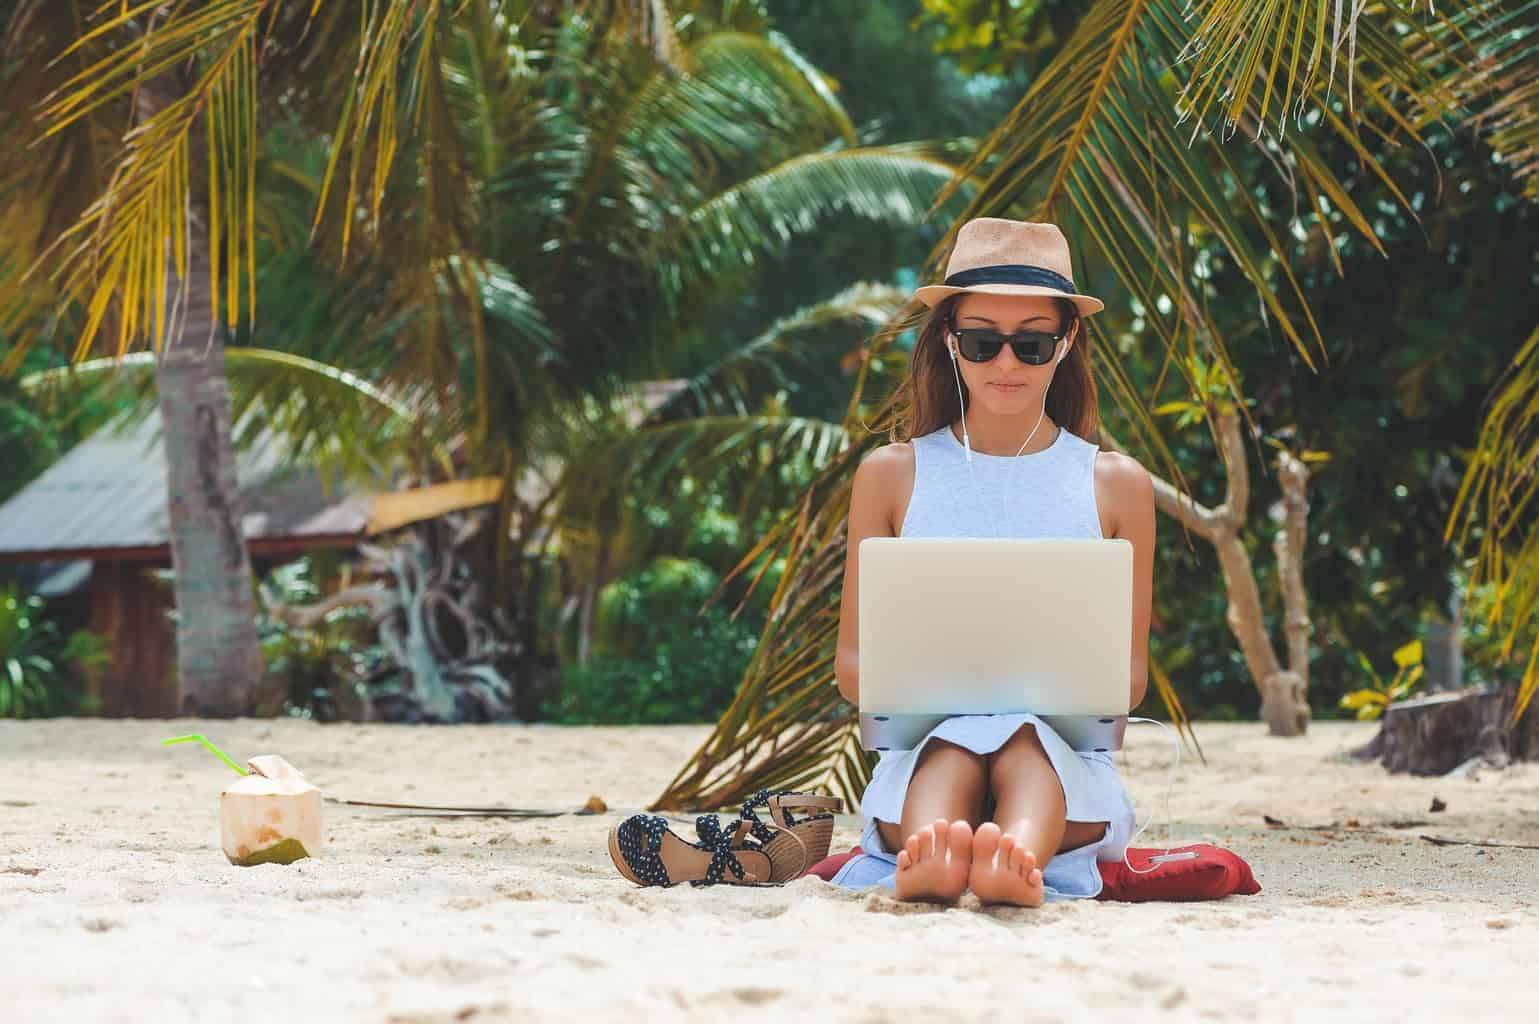 What are digital nomads?